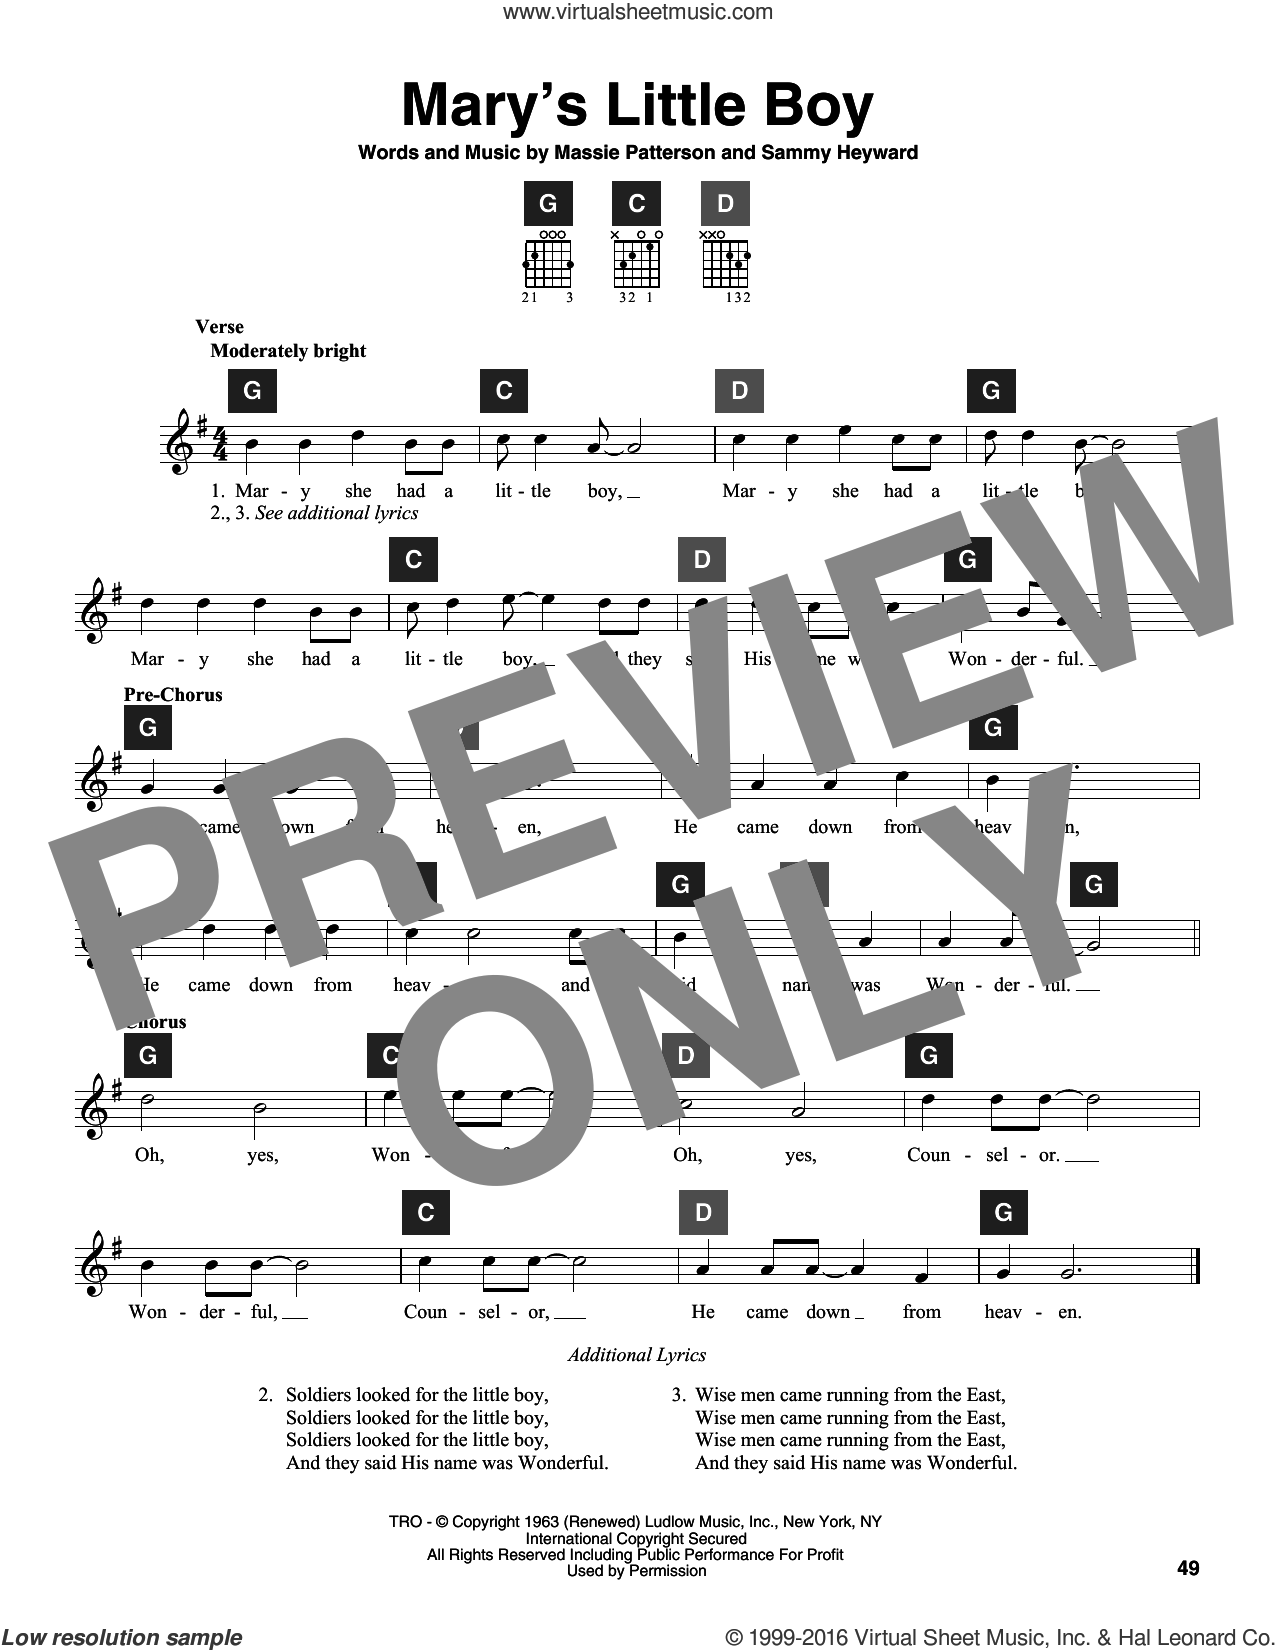 Mary's Little Boy sheet music for guitar solo (ChordBuddy system) by Sammy Heyward, Travis Perry and Massie Patterson, intermediate guitar (ChordBuddy system)